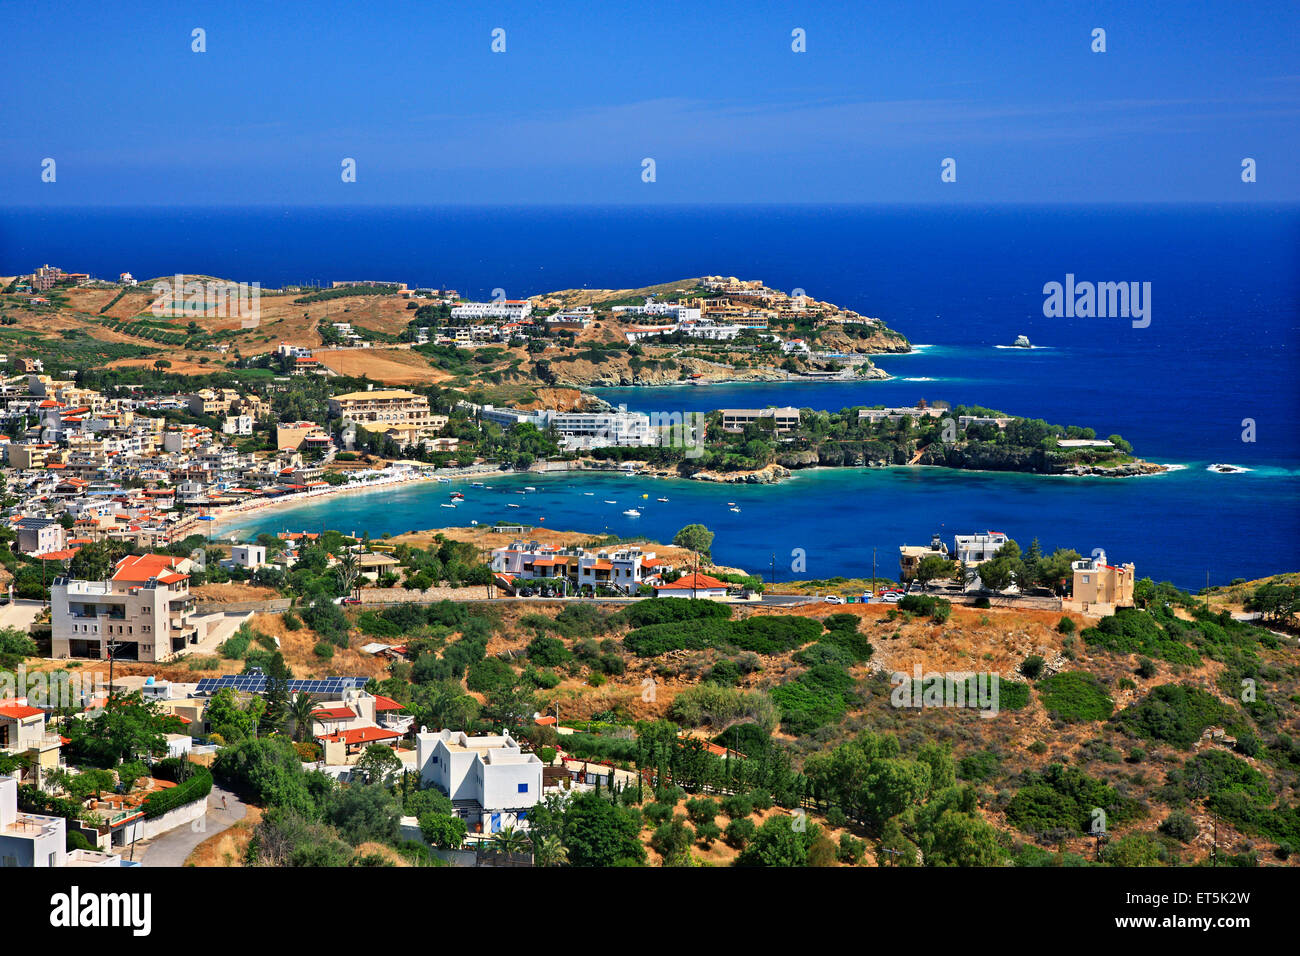 Panoramic view of Agia Pelagia, Heraklion, Crete, Greece. - Stock Image